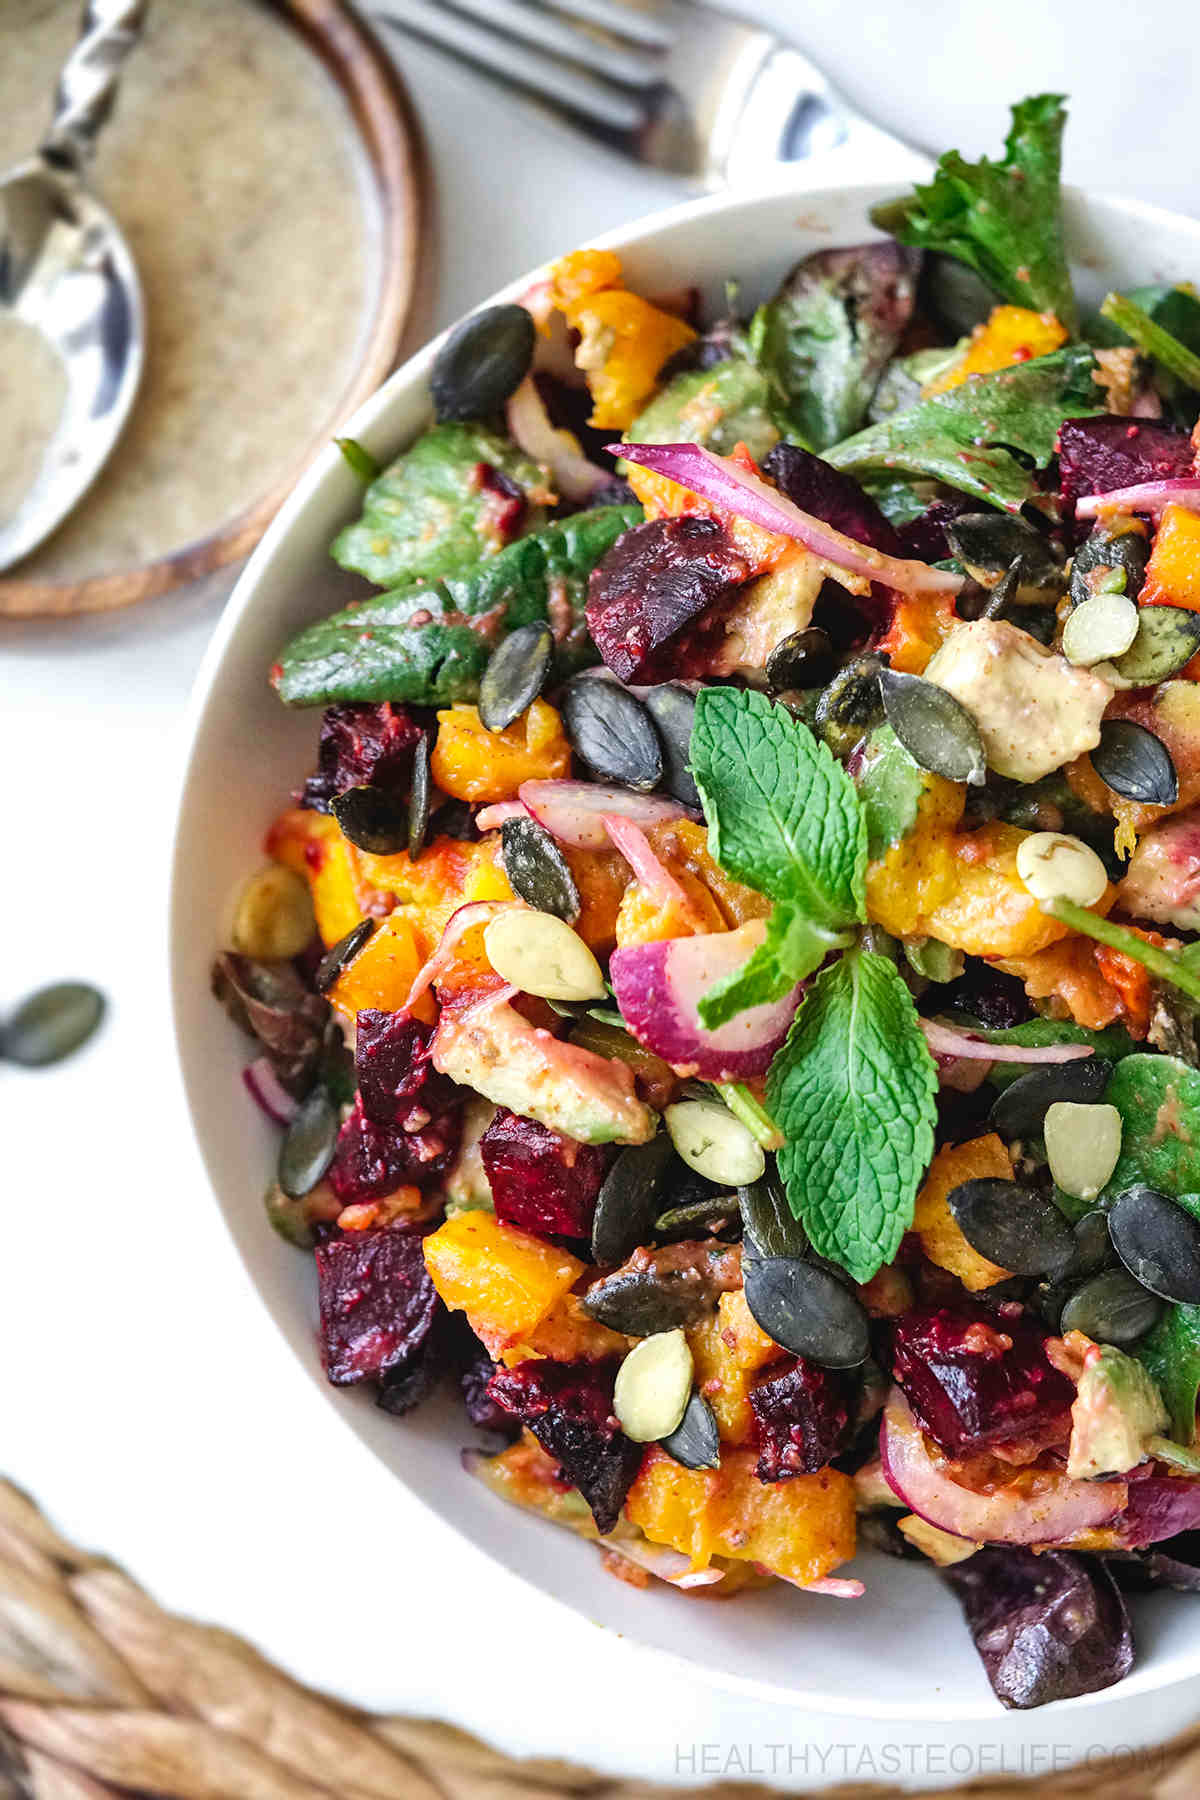 Beetroot and pumpkin salad recipe and dressing (vegan and gluten free).